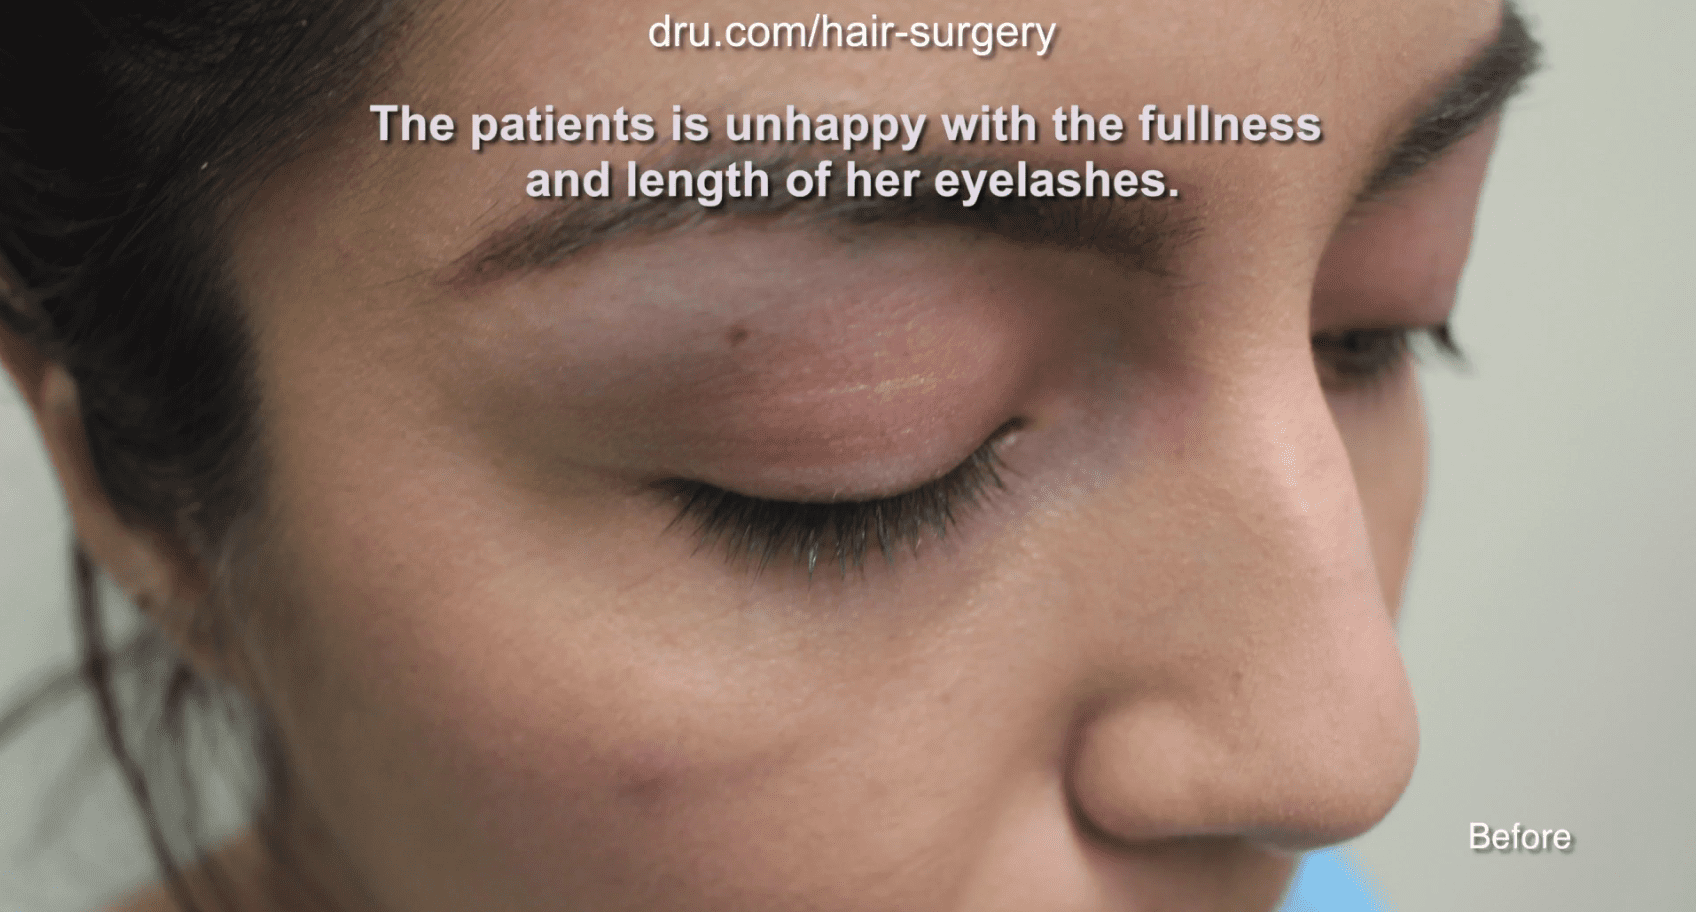 Instead of continuing to style her eyelashes every day to her desired density and length, the patient decided to consult Dr. U about an eyelash hair transplant.